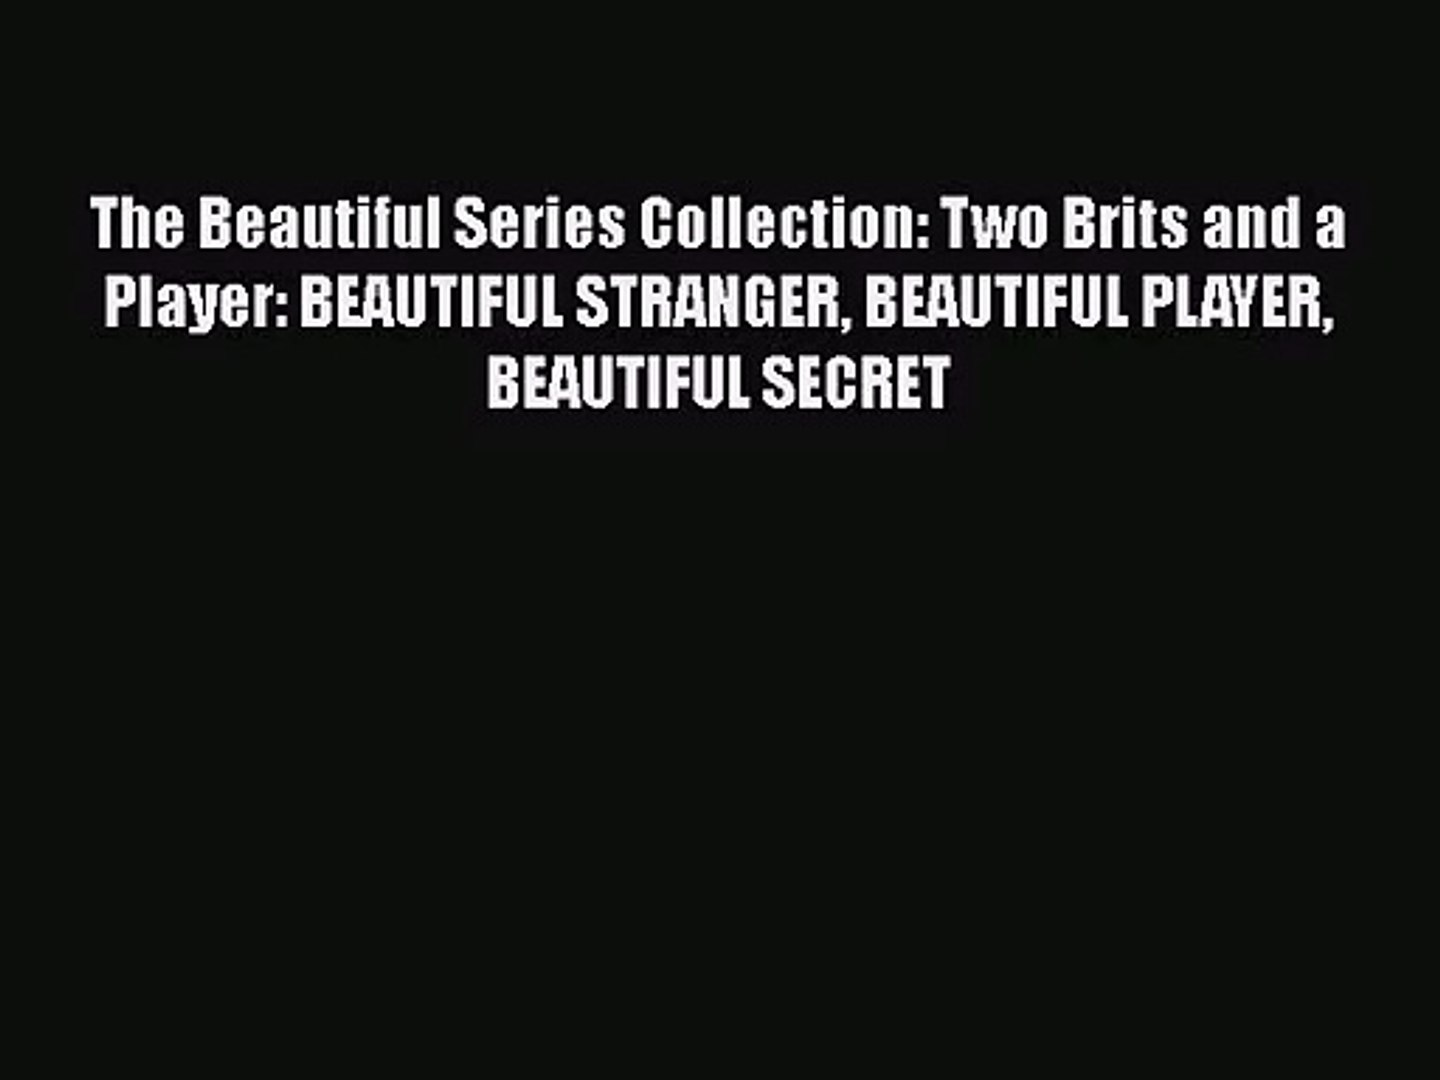 Download The Beautiful Series Collection: Two Brits and a Player: BEAUTIFUL STRANGER BEAUTIFUL